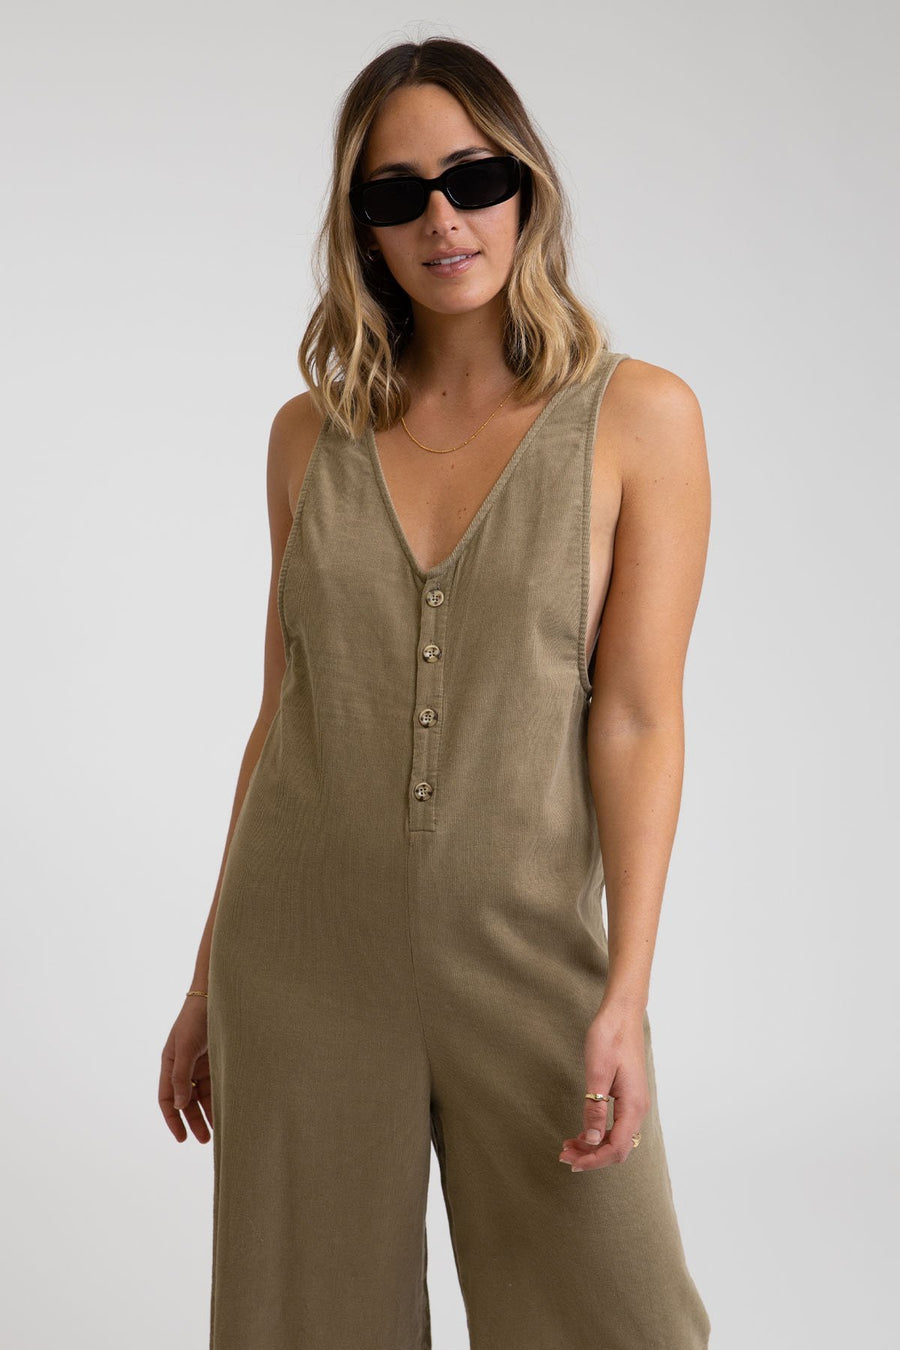 RHYTHM Cape Town Jumpsuit Women's Olive WOMENS APPAREL - Women's Jumpers and Rompers Rhythm